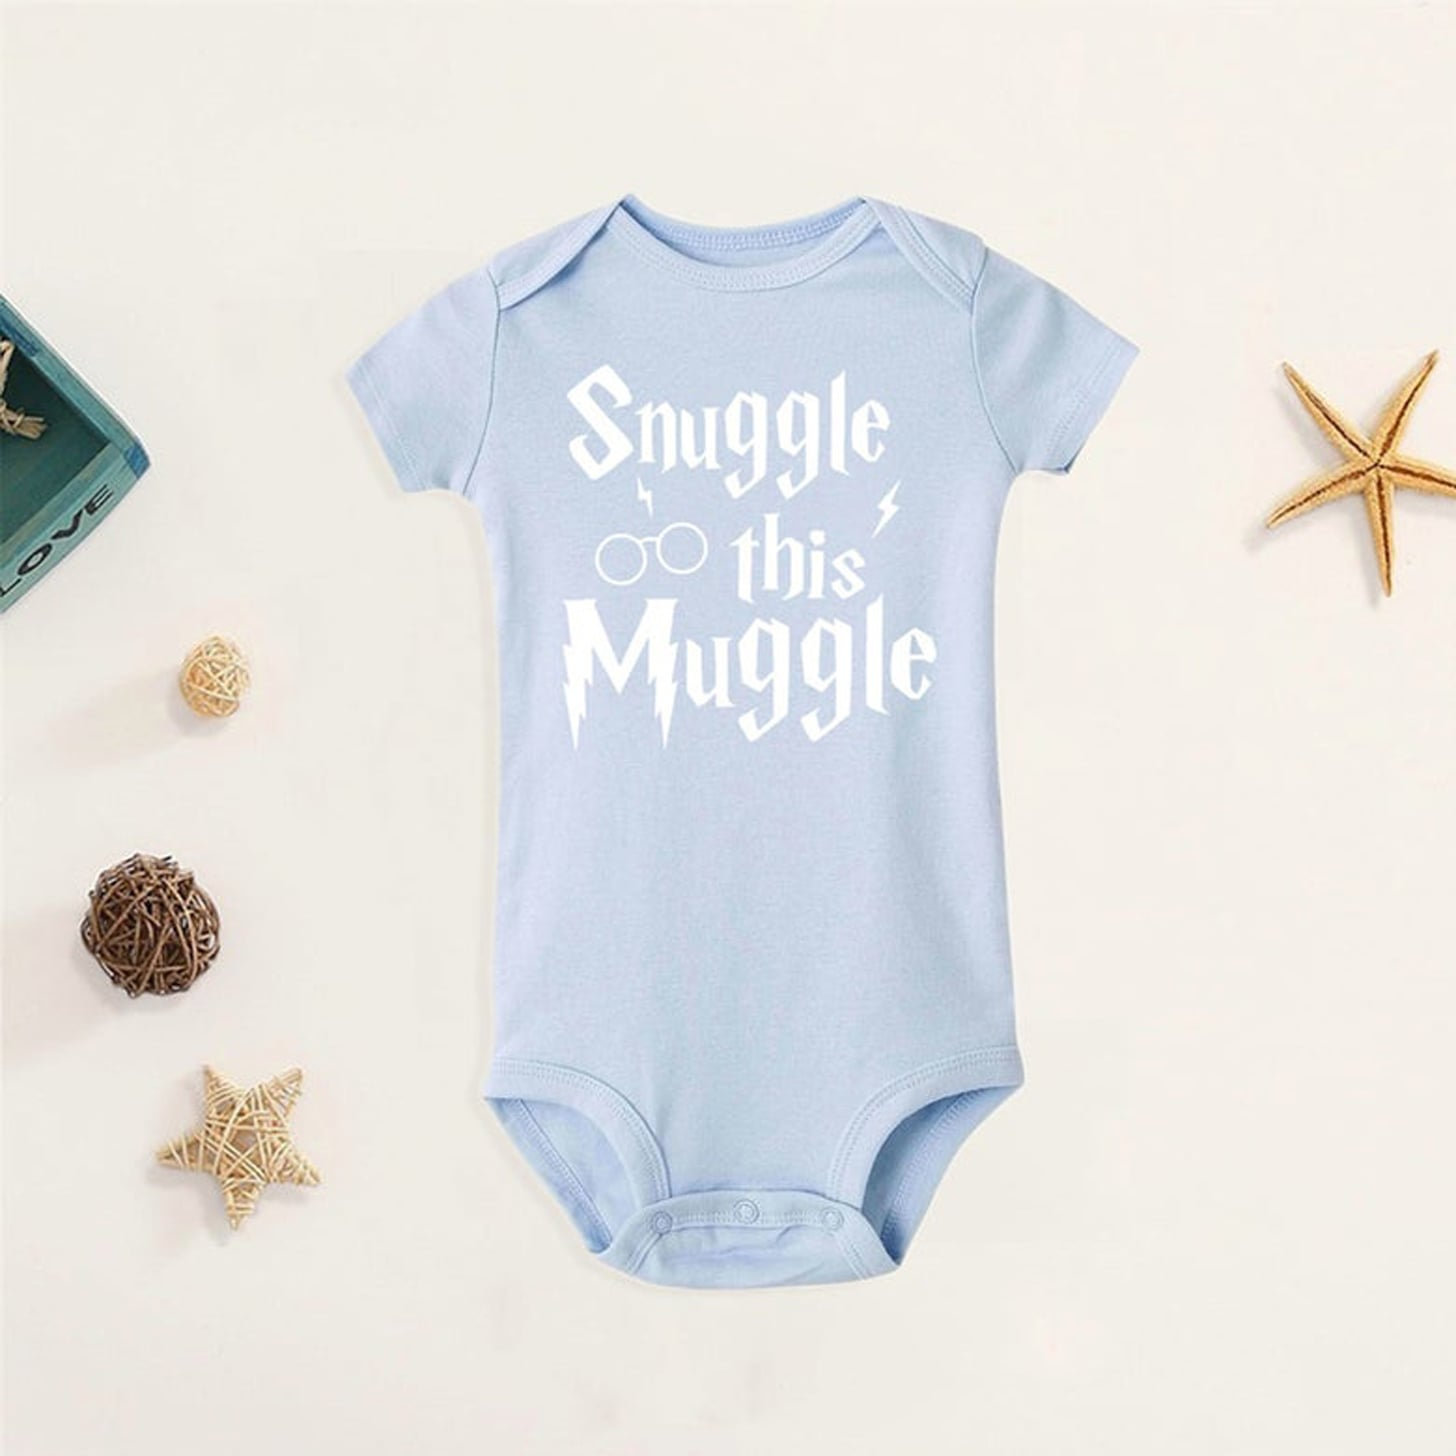 I/'m always getting picked up Baby Vest Babygrow Baby Gifts Babywear Baby Shower